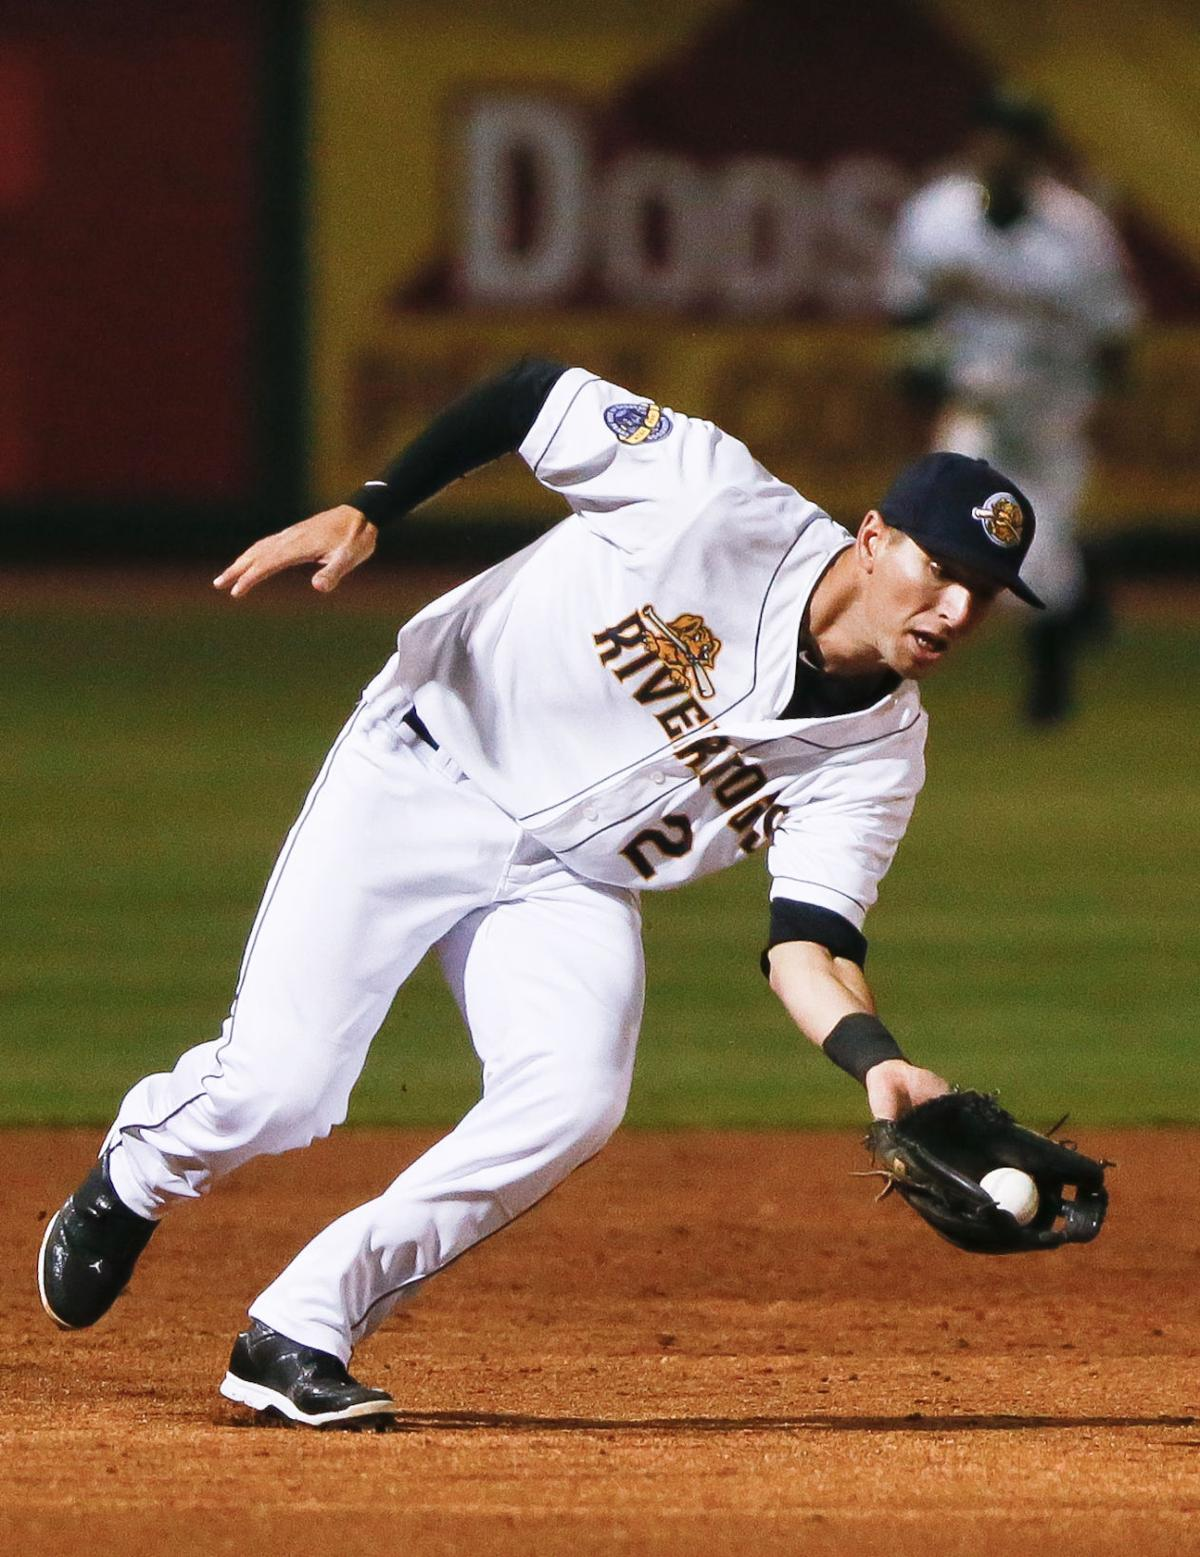 Riverdogs vs Intimidators14.JPG